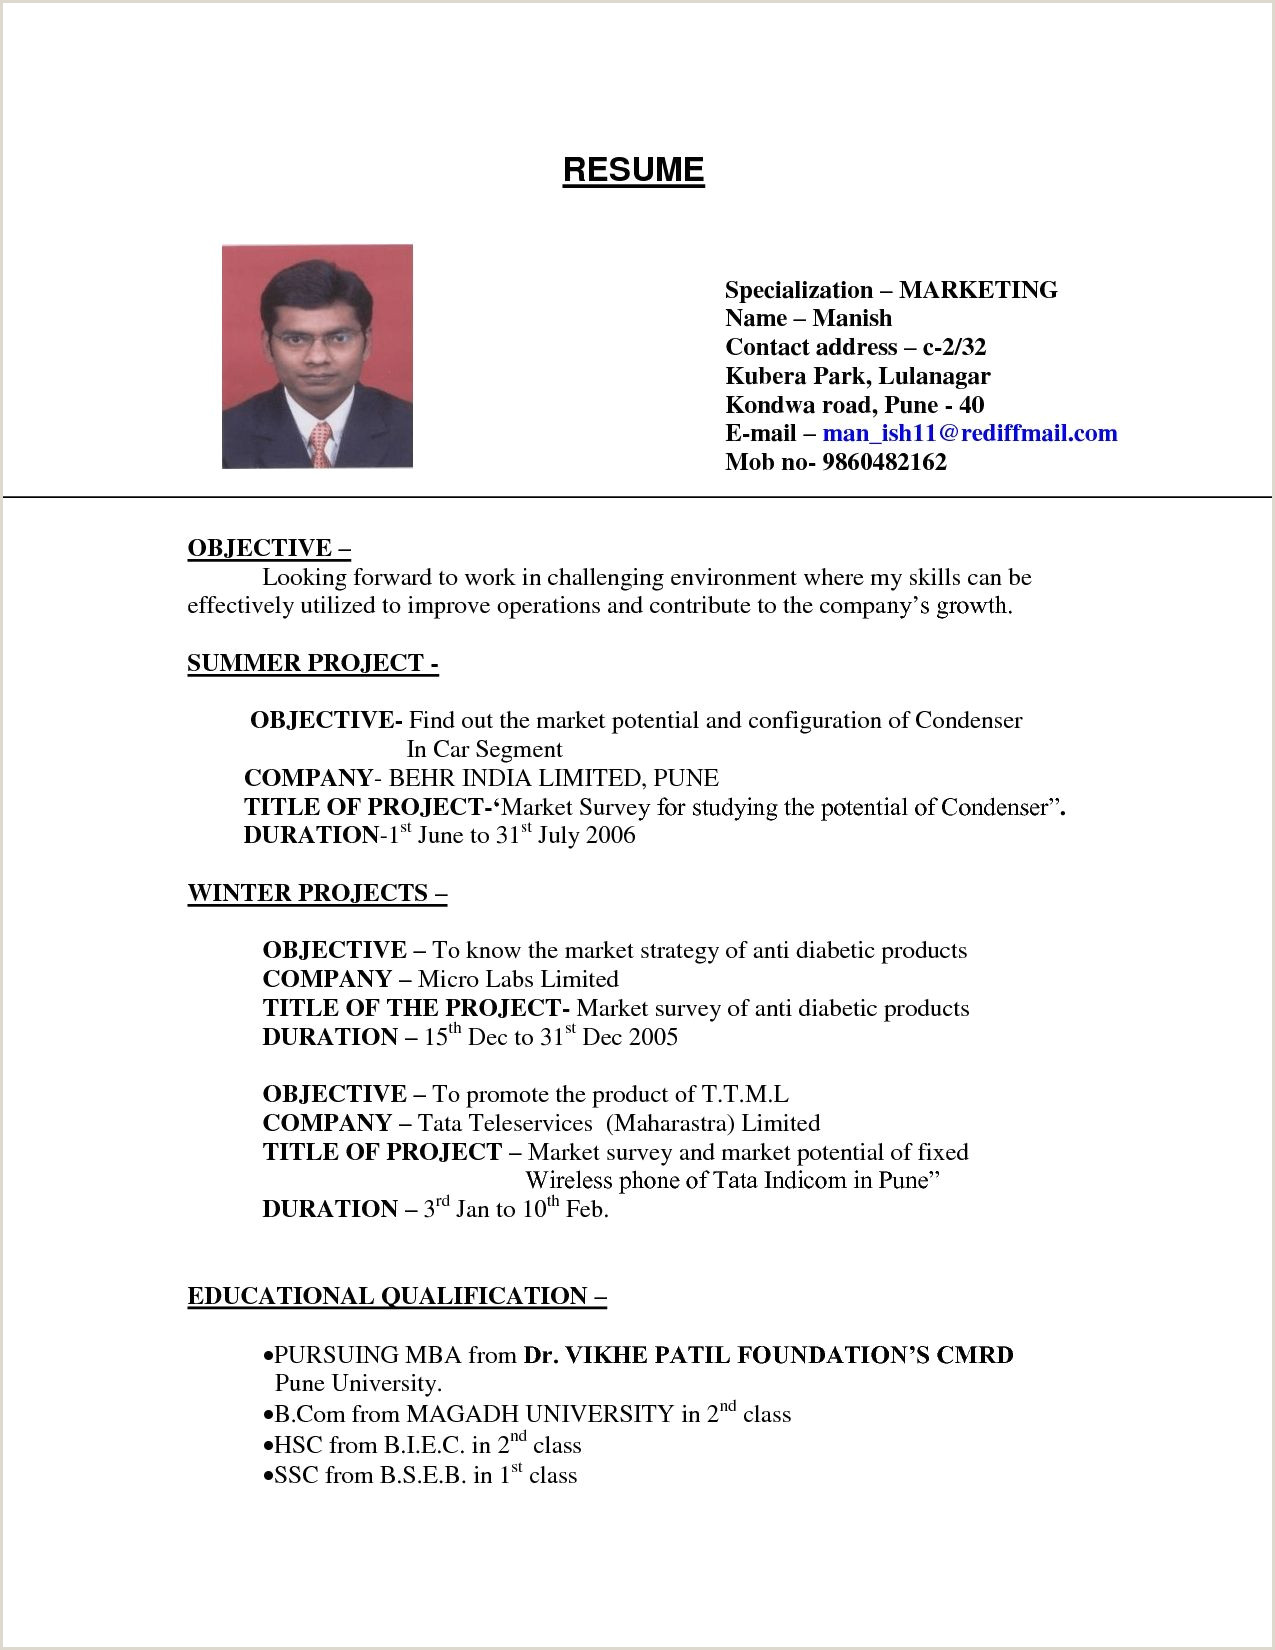 Resume format for Job B.com Examples Resumes Sample Resume for College Student